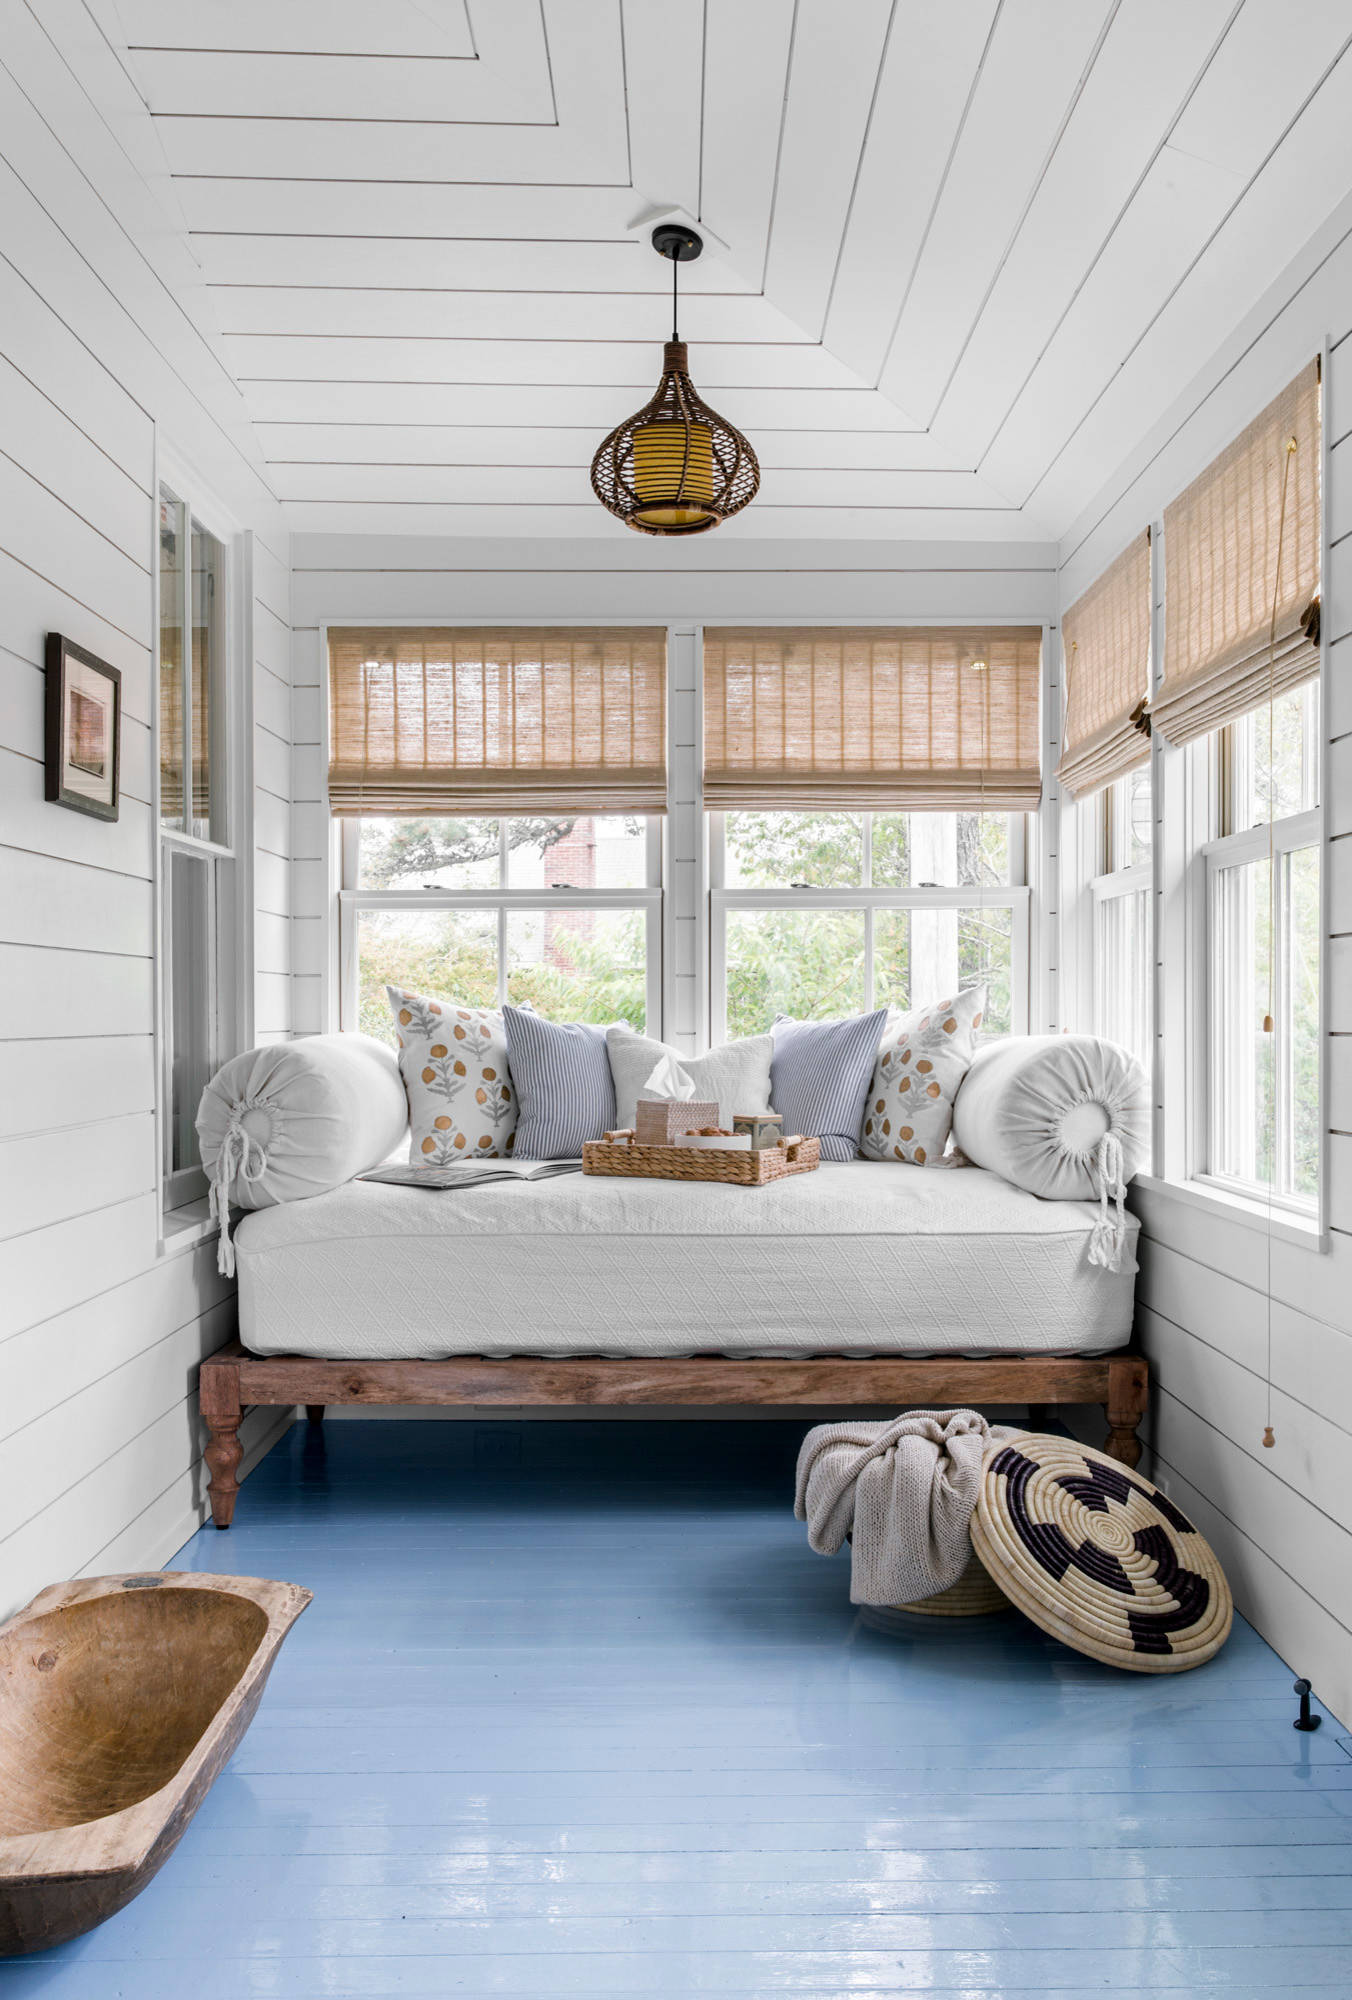 8 Beautiful Small Sunroom Pictures & Ideas  Houzz